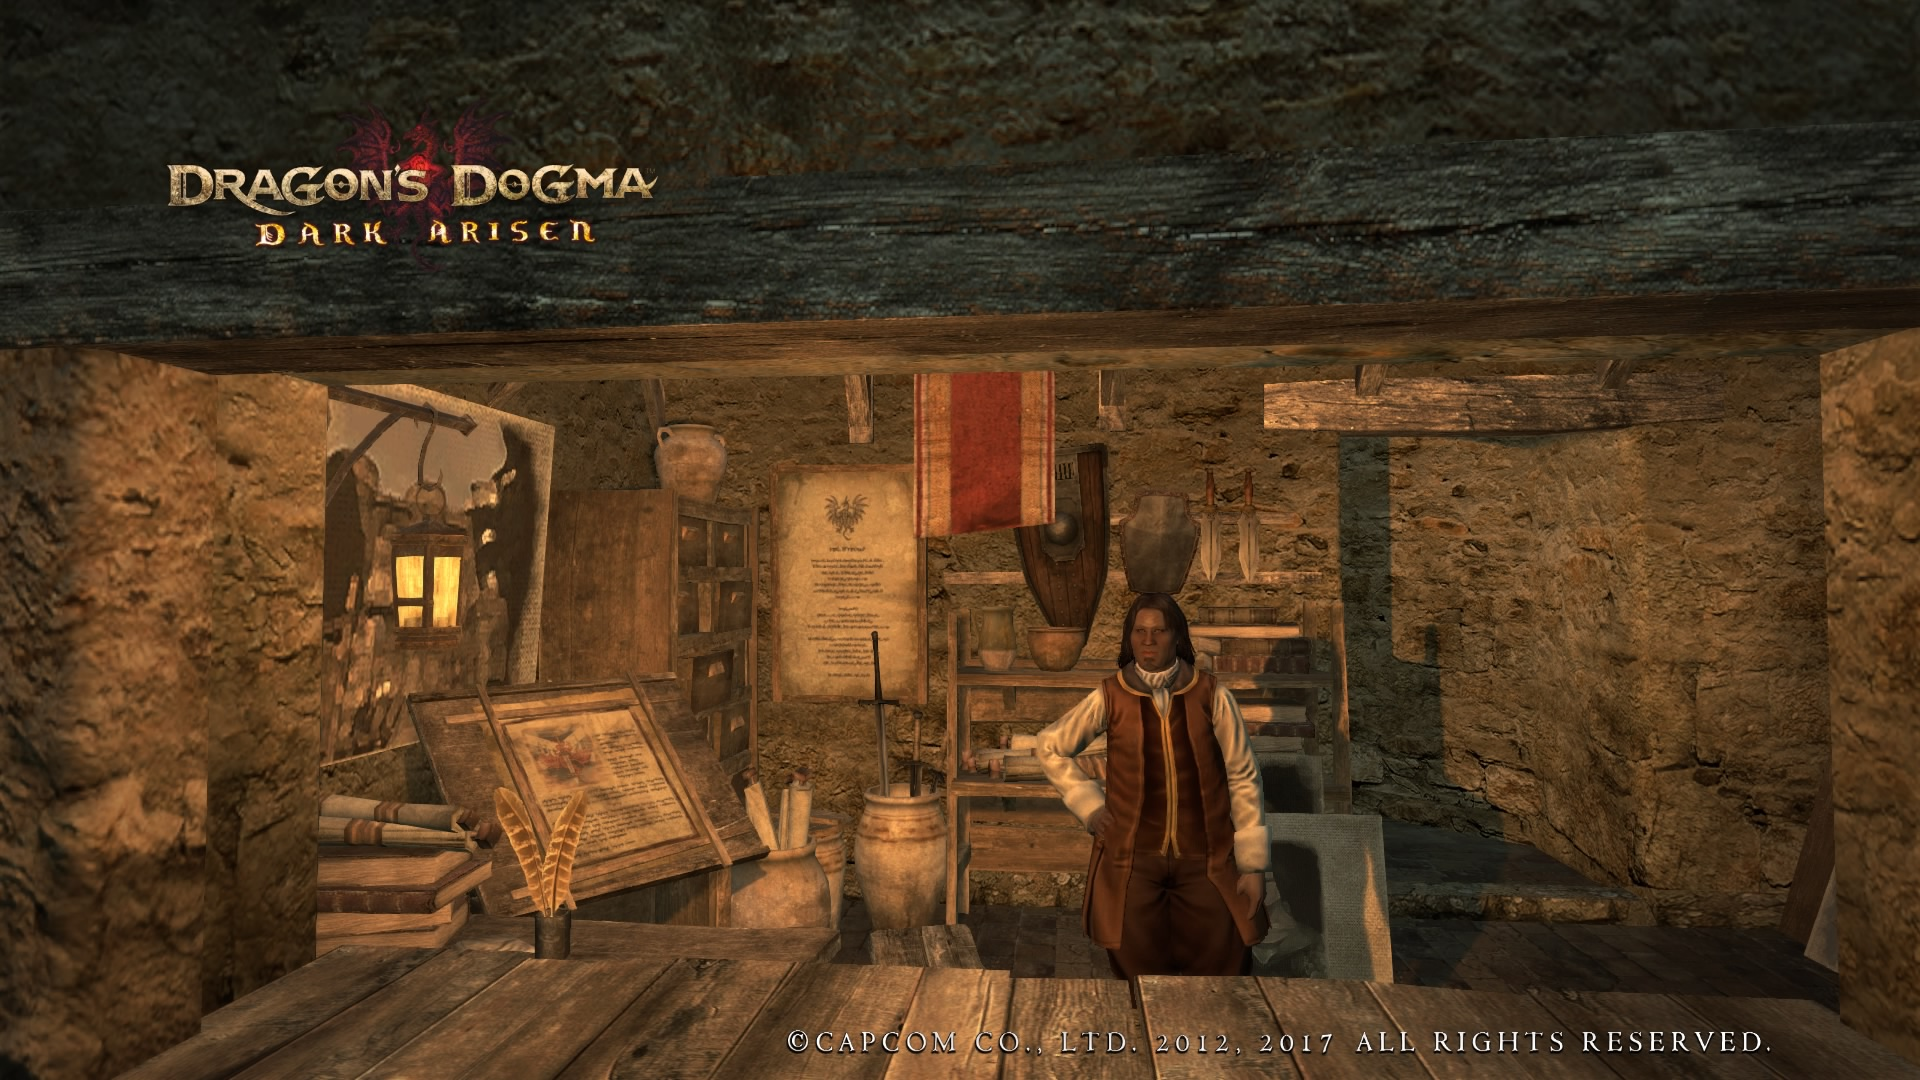 Grievous gold dragons dogma pc max size without steroids